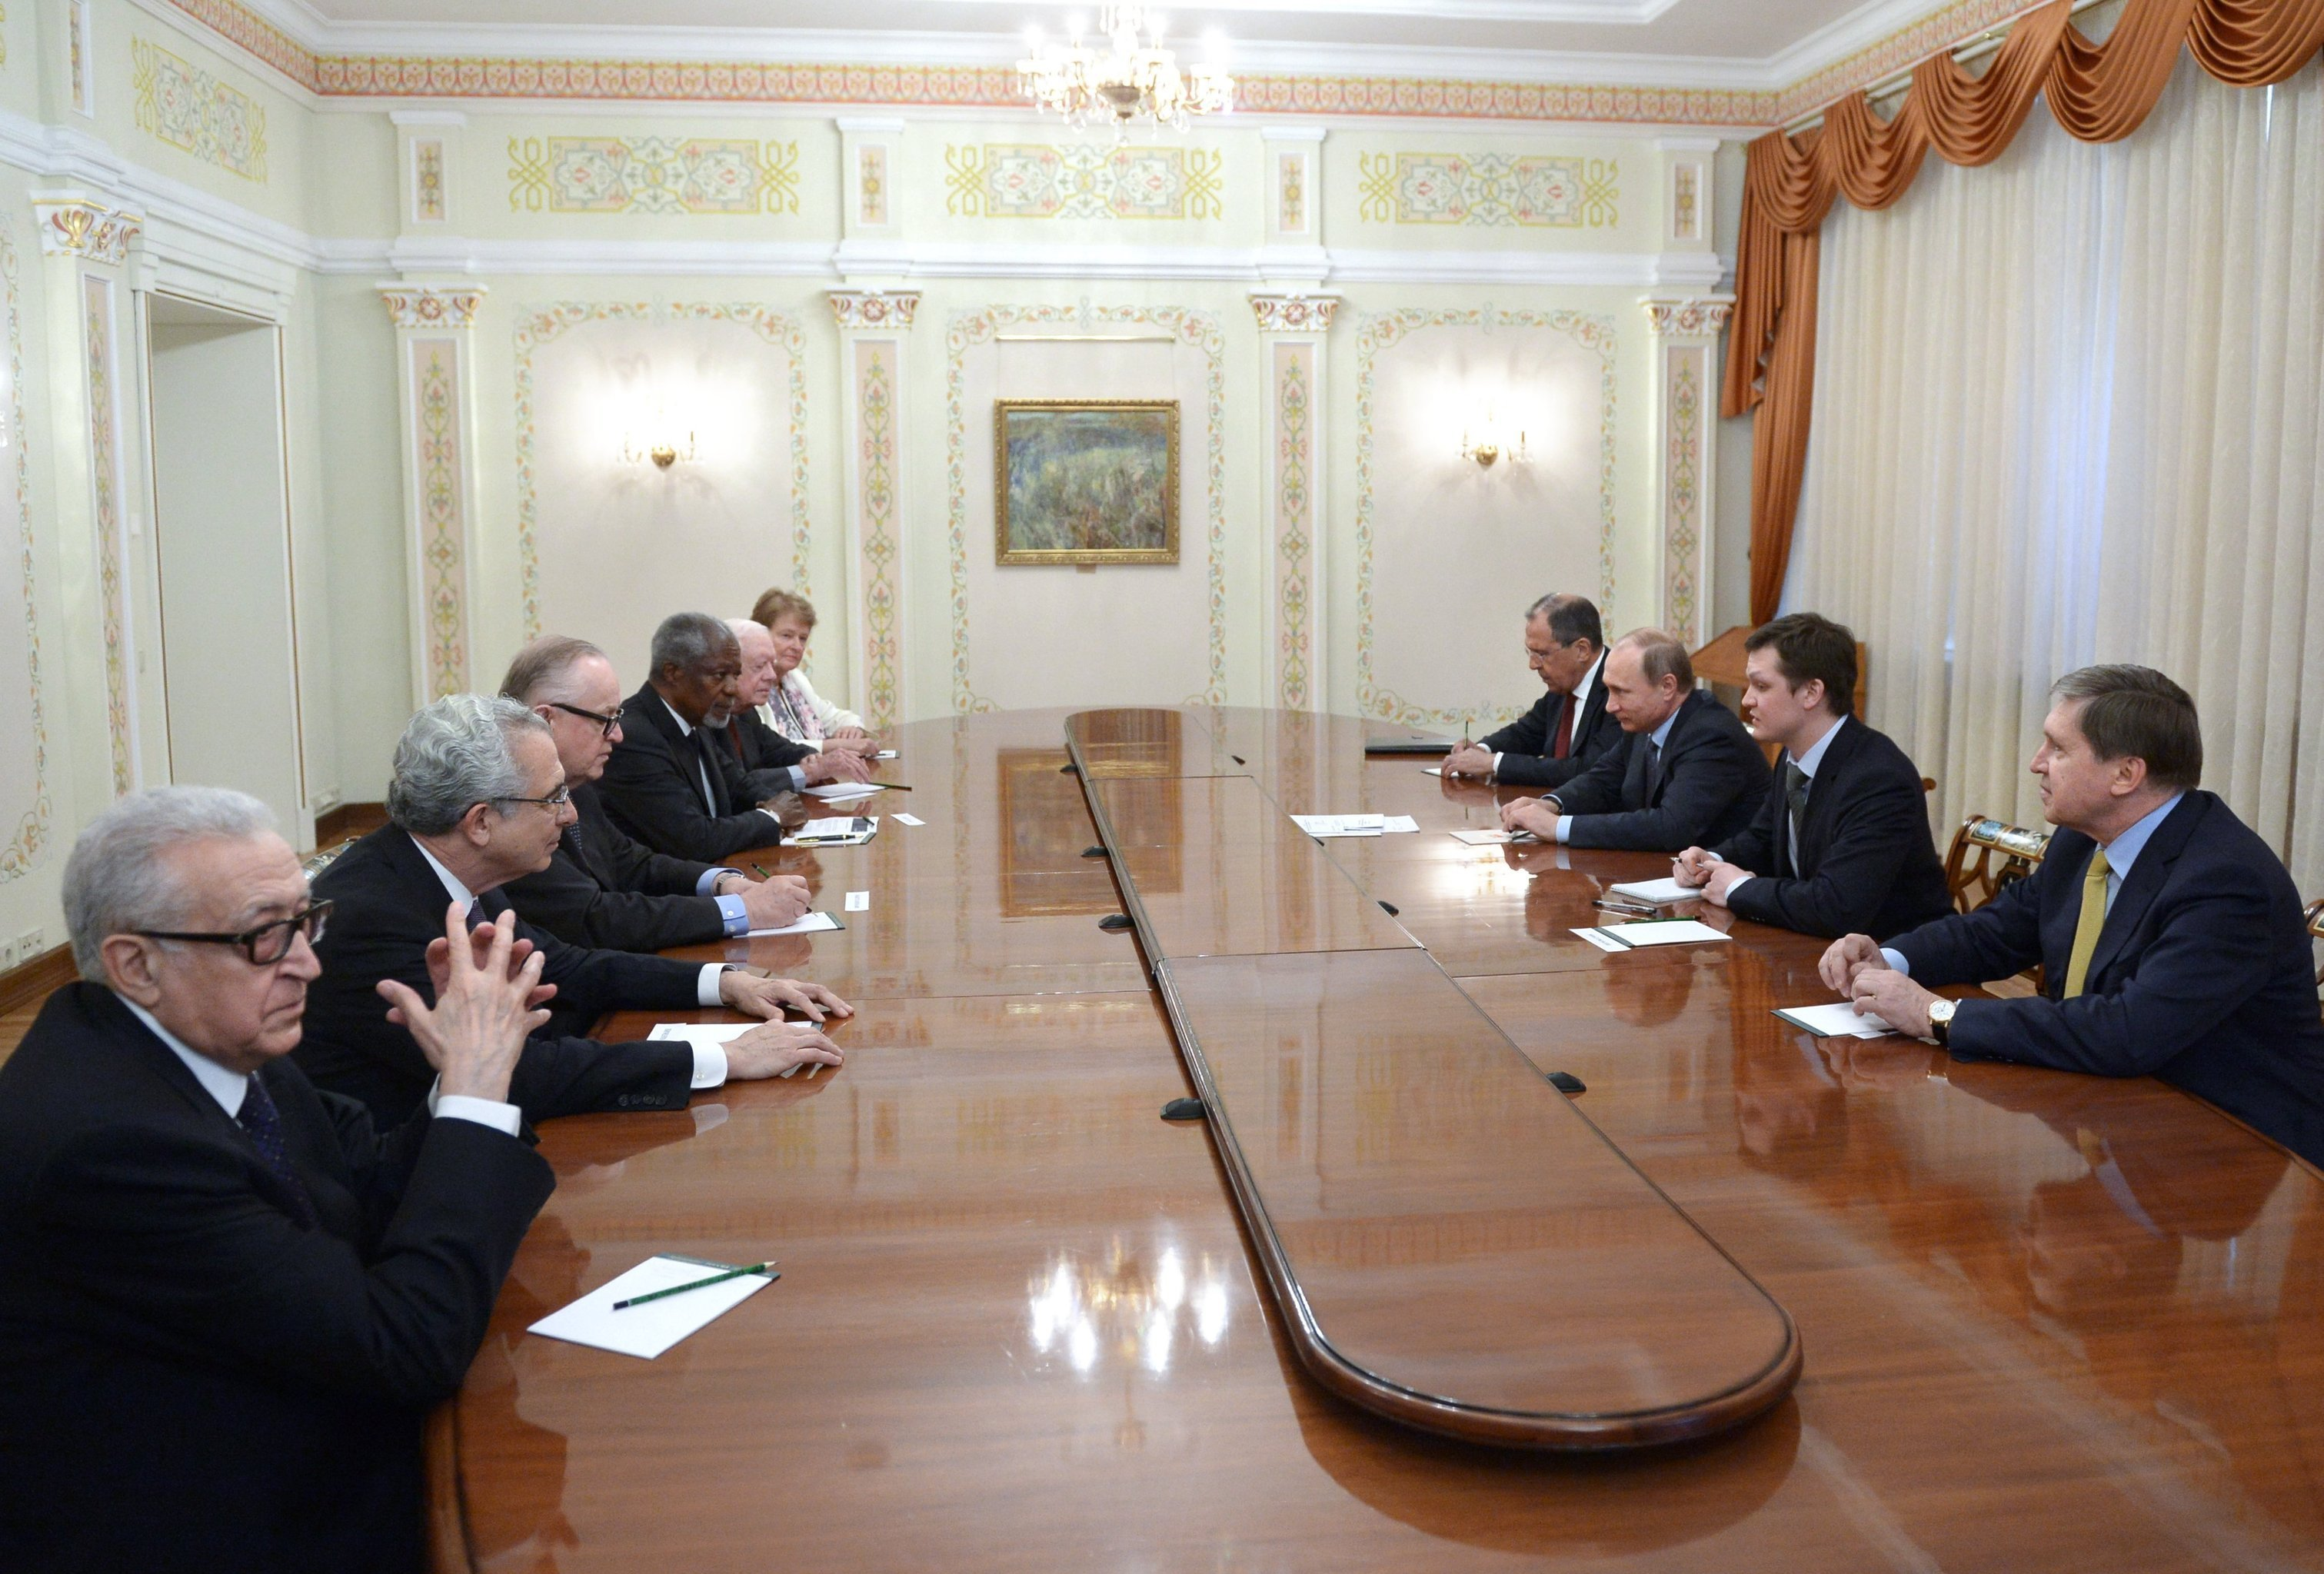 Vladimir Putin meets with members of The Elders